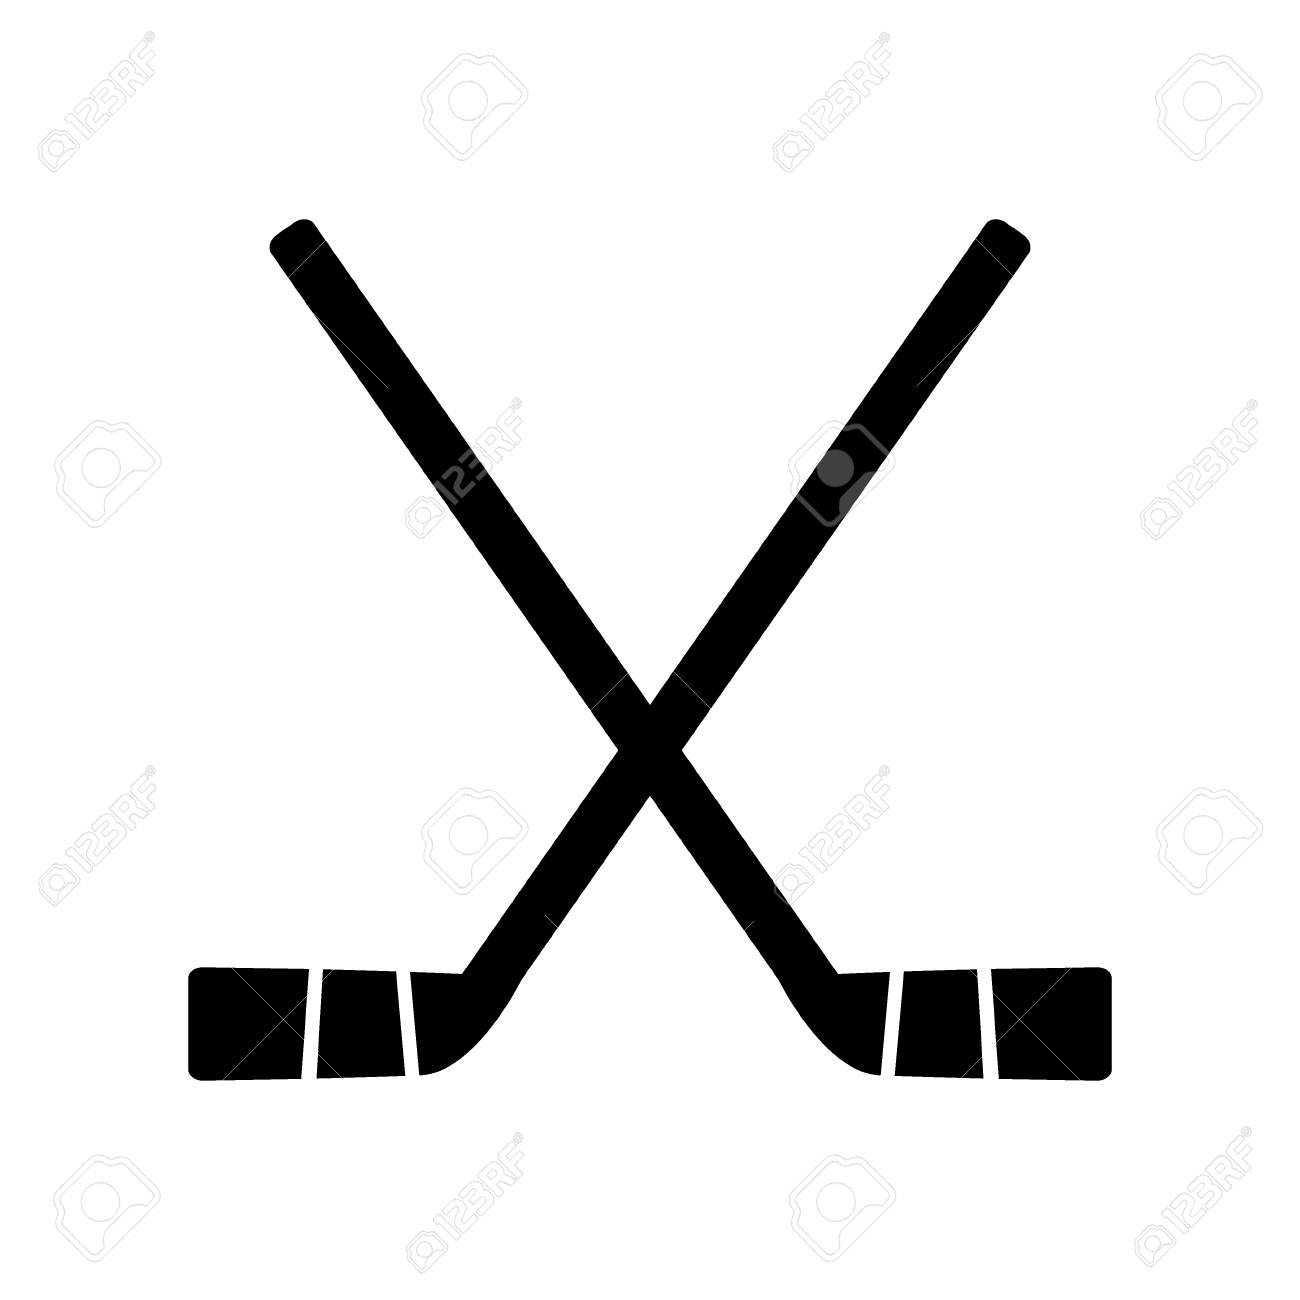 Two crossed hockey sticks on white background vector illustration..